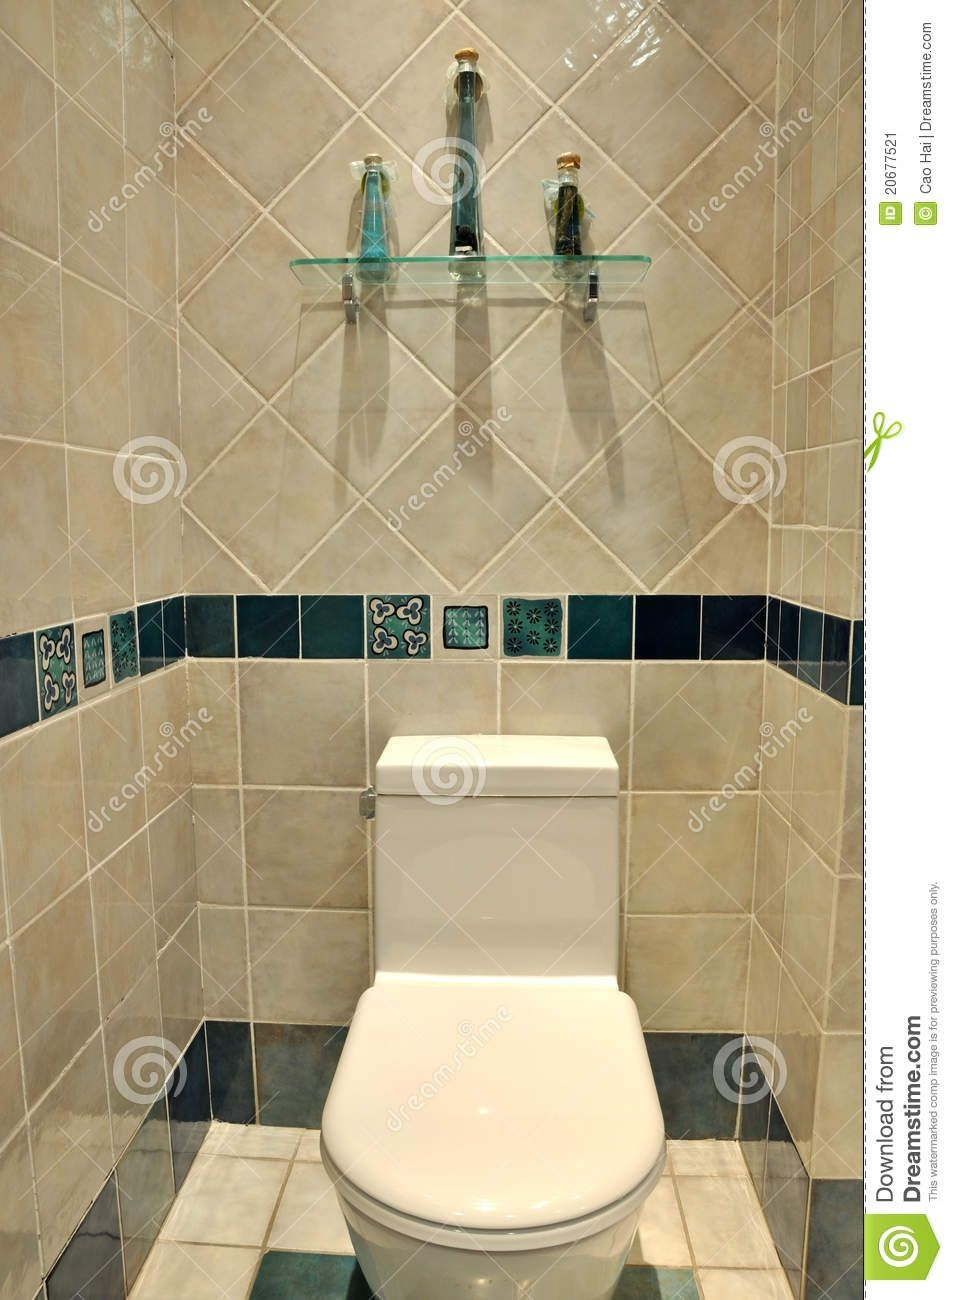 Clean Toilet Interior Stock Image  Image 20677521